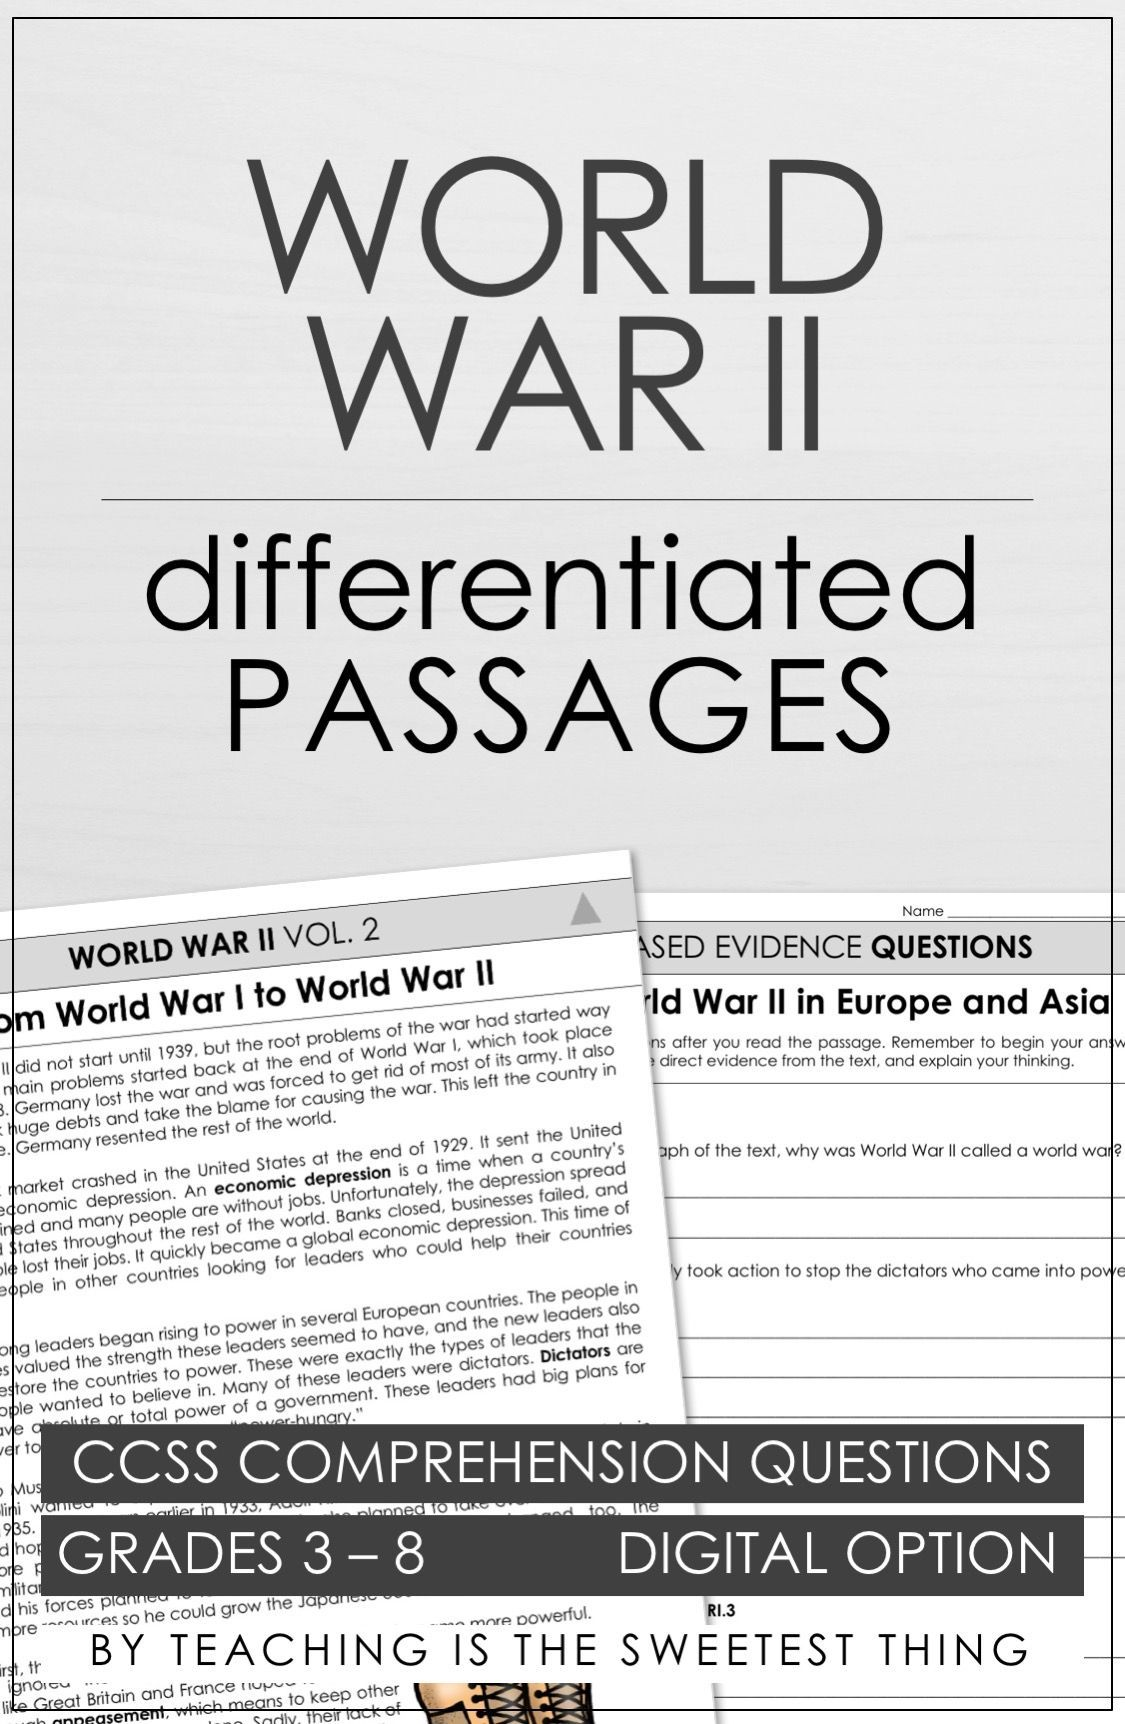 World War Ii Vol 2 Passages